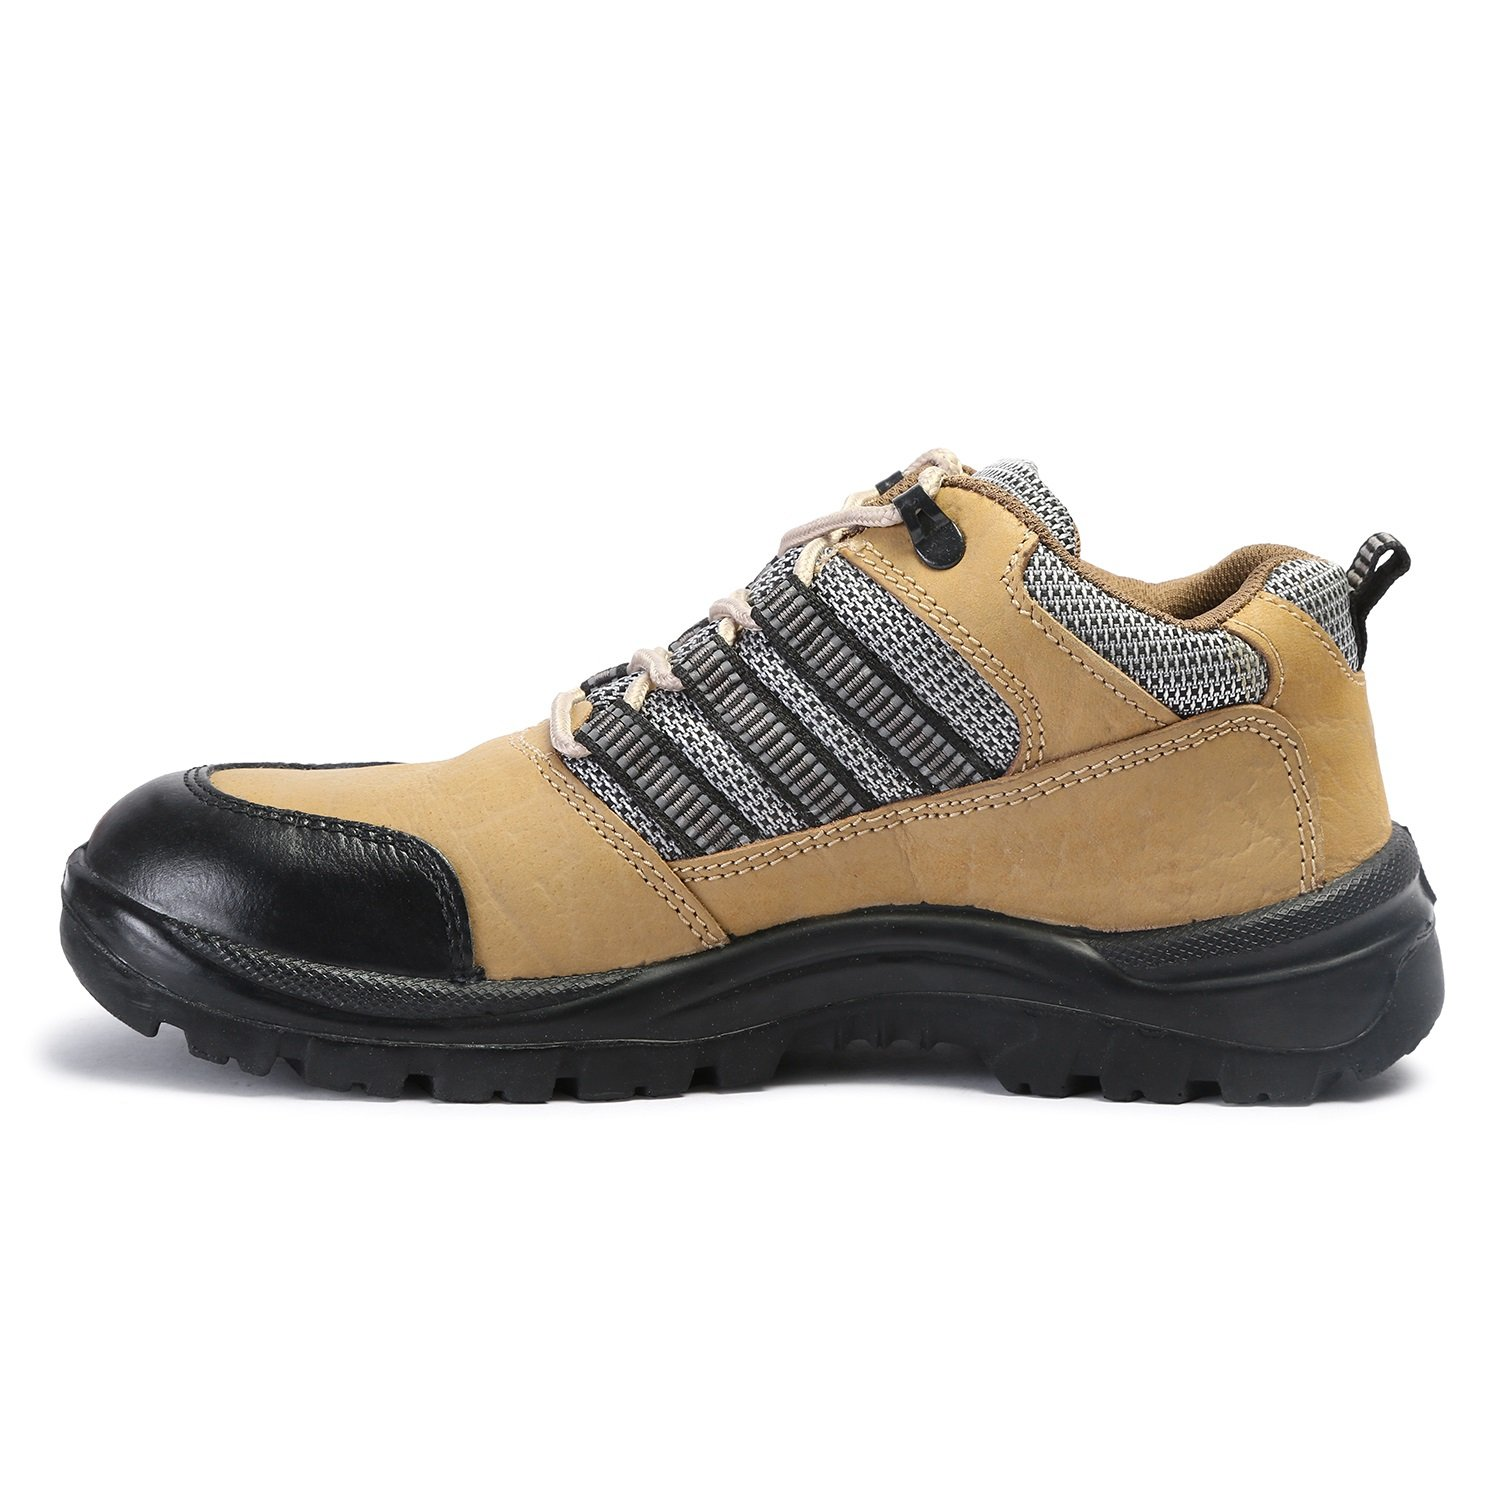 Allen Cooper Ac-9005 Safety Shoes - 8